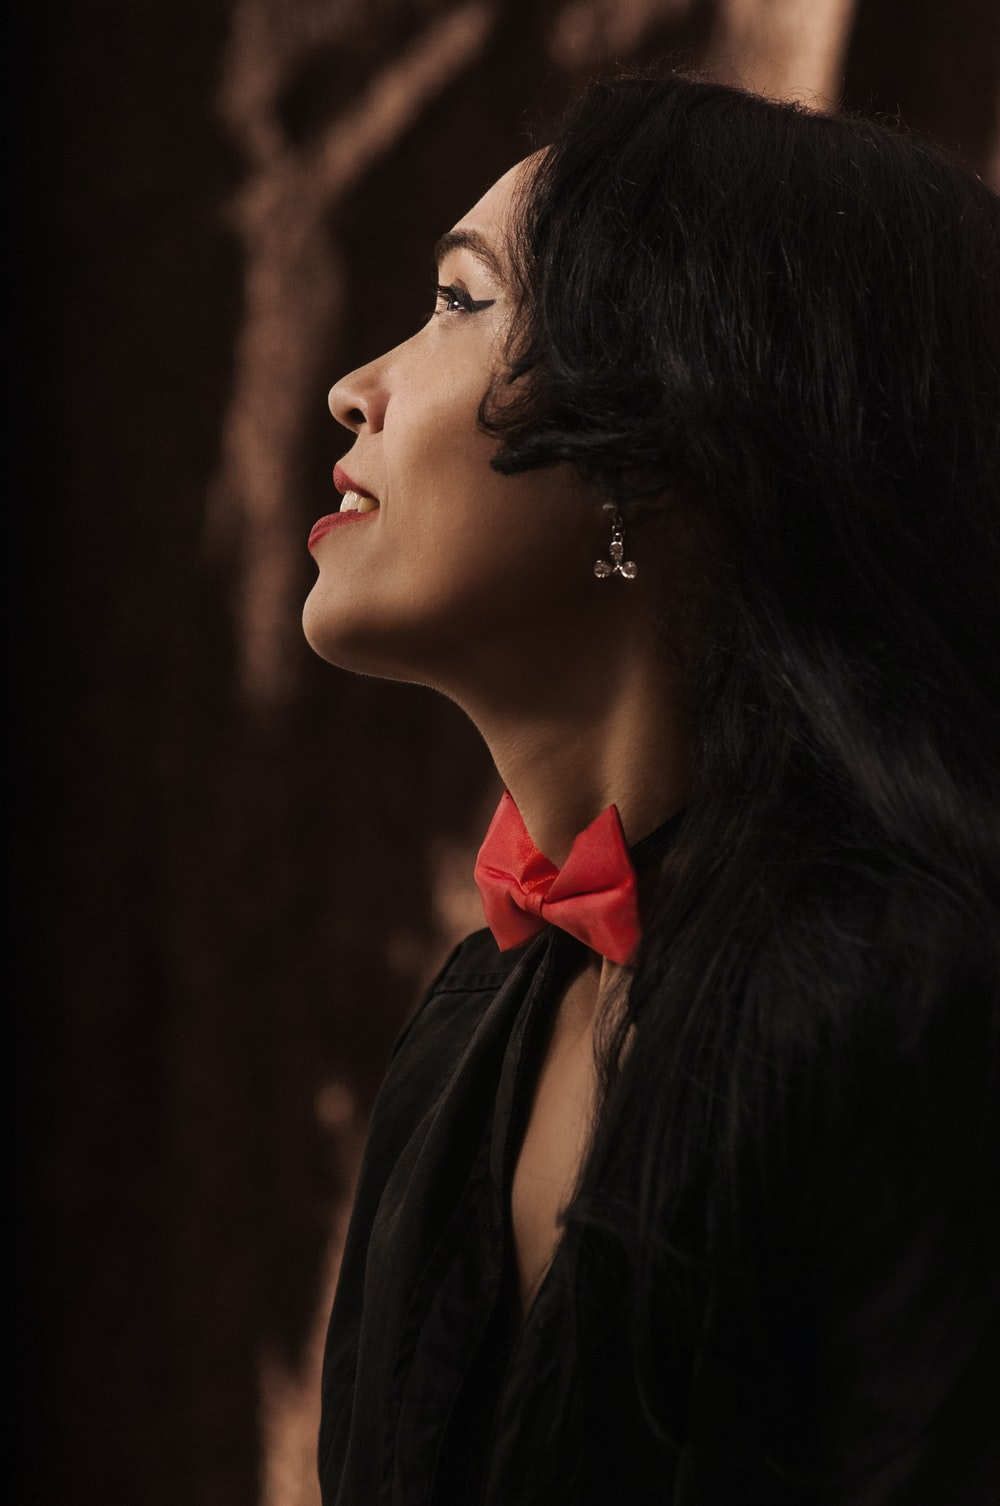 woman in black dress with red ribbon on her hair